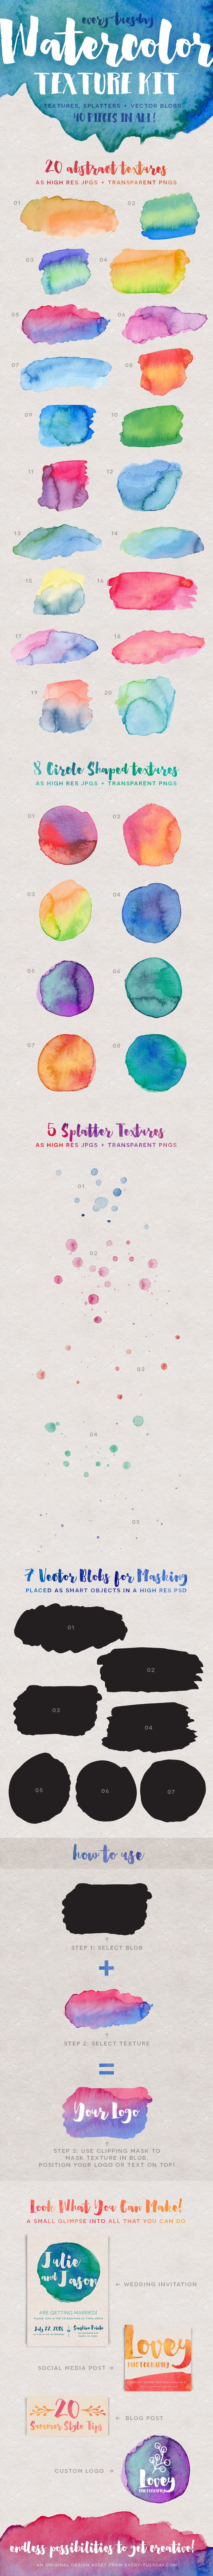 Get creative with the full 40 piece Watercolor Texture Kit! This kit is packed with 20 unique abstract watercolor textures, 8 circle-shaped textures perfect for logos, 5 splatter textures and 7 blobs perfect for cropping into your favorite textures and keeping brushed edges. All 40 pieces come as high res, 300dpi RGB jpgs and transparent pngs - so you get the vibrancy of RGB and retain the high standard print resolution if you'd like to convert to CMYK for prints. And - with the included…